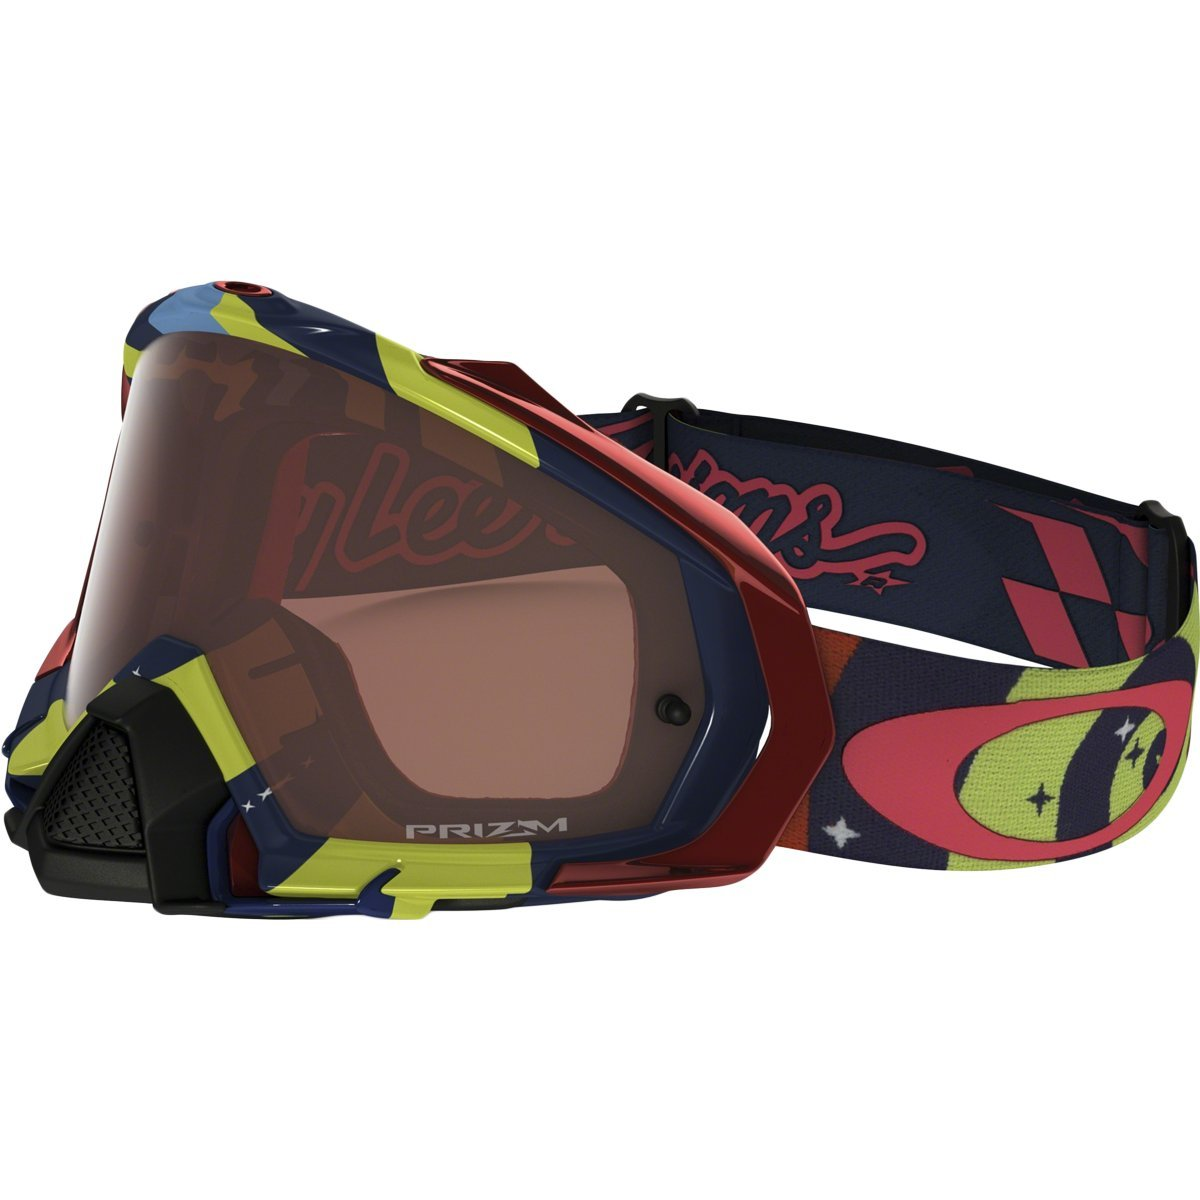 Oakley Mayhem Pro MX TLD Collection Adult Off-Road Motorcycle Goggles Eyewear - Phantom RYB/Prizm MX Bronze/One Size Fits All by Oakley